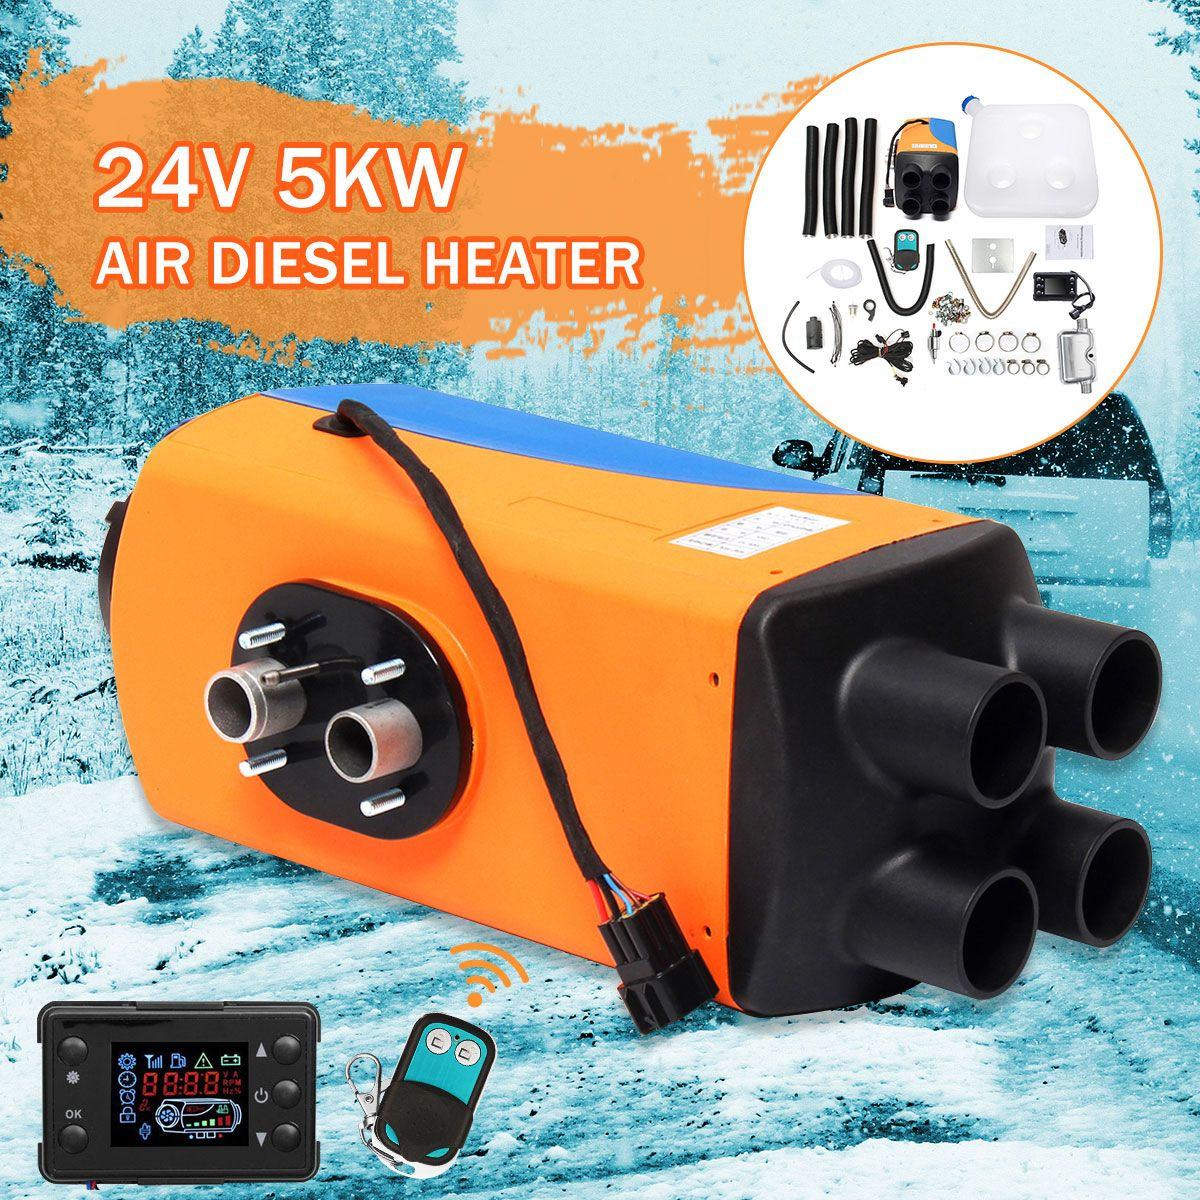 Audew Car Parking Air Diesels Heater 24V 5KW 4-Holes 5000W Car Heater + LCD Switch + Silencer for Motorhome Boats Car Accessorie